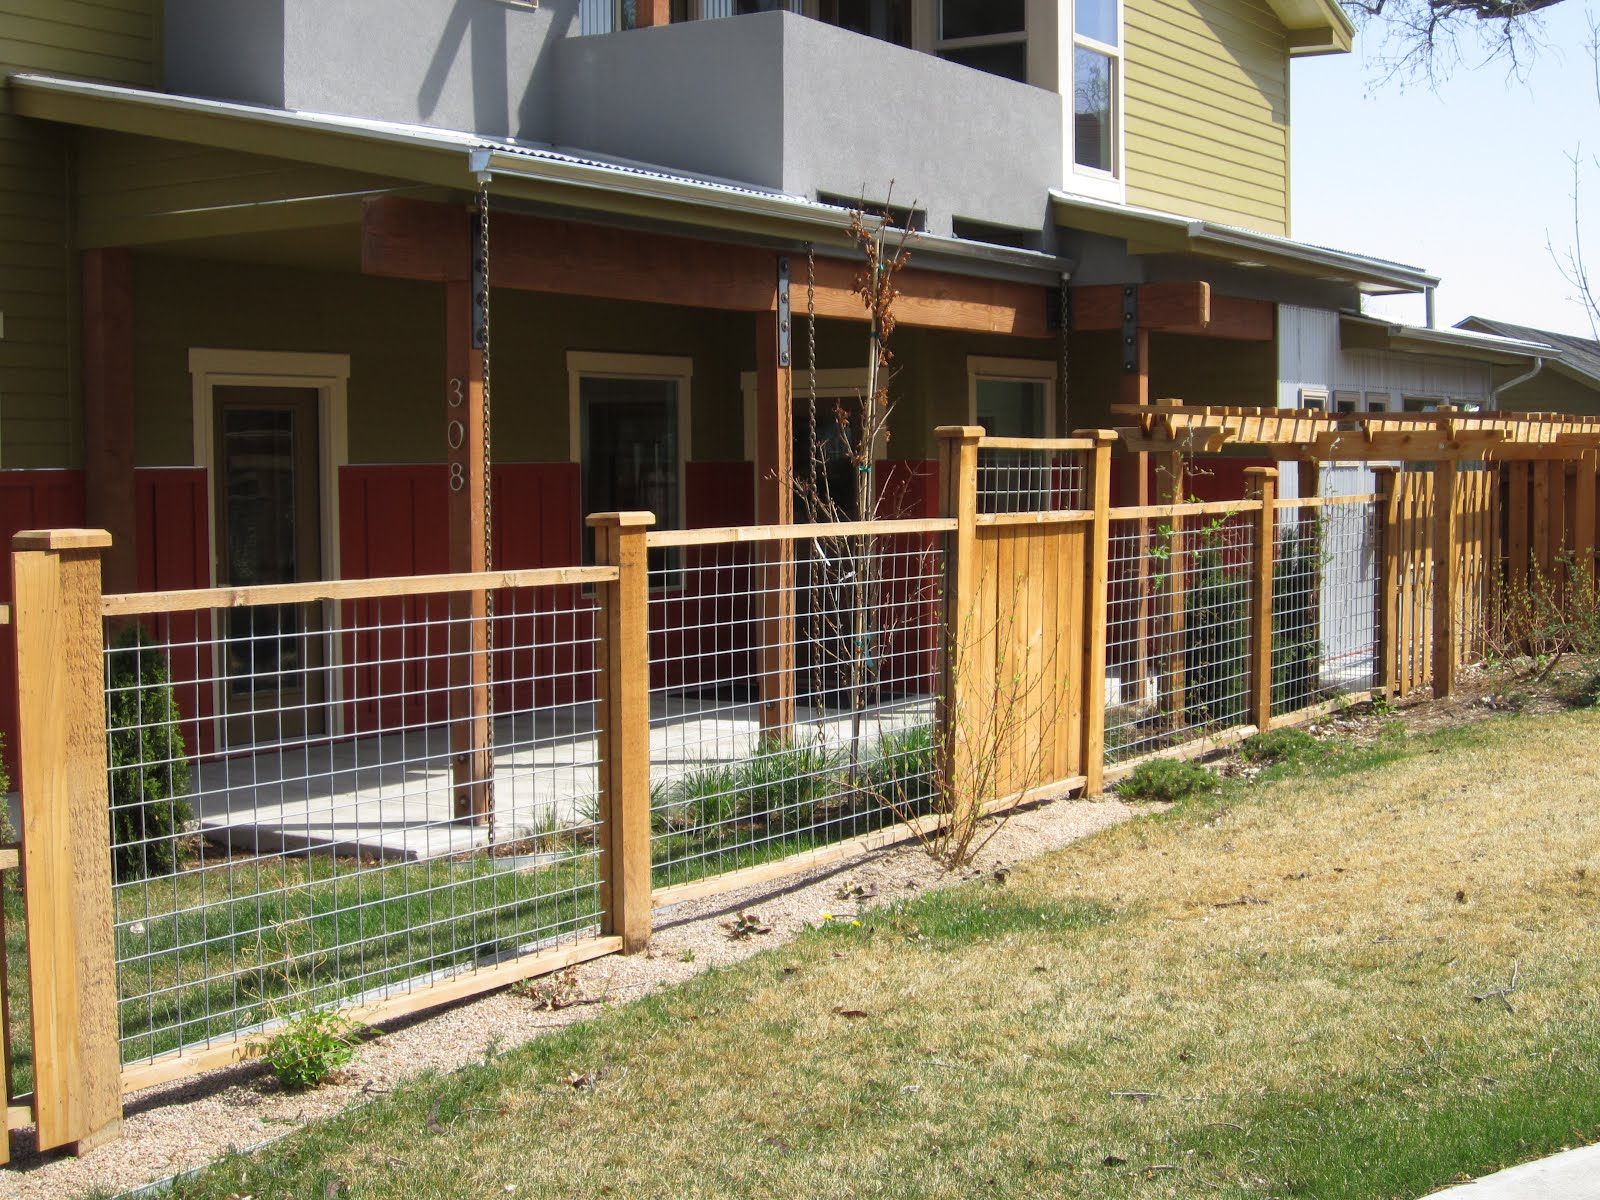 Rustic Wire Fence Panels Remove Wire Fence Panels Posts Design pertaining to dimensions 1600 X 1200